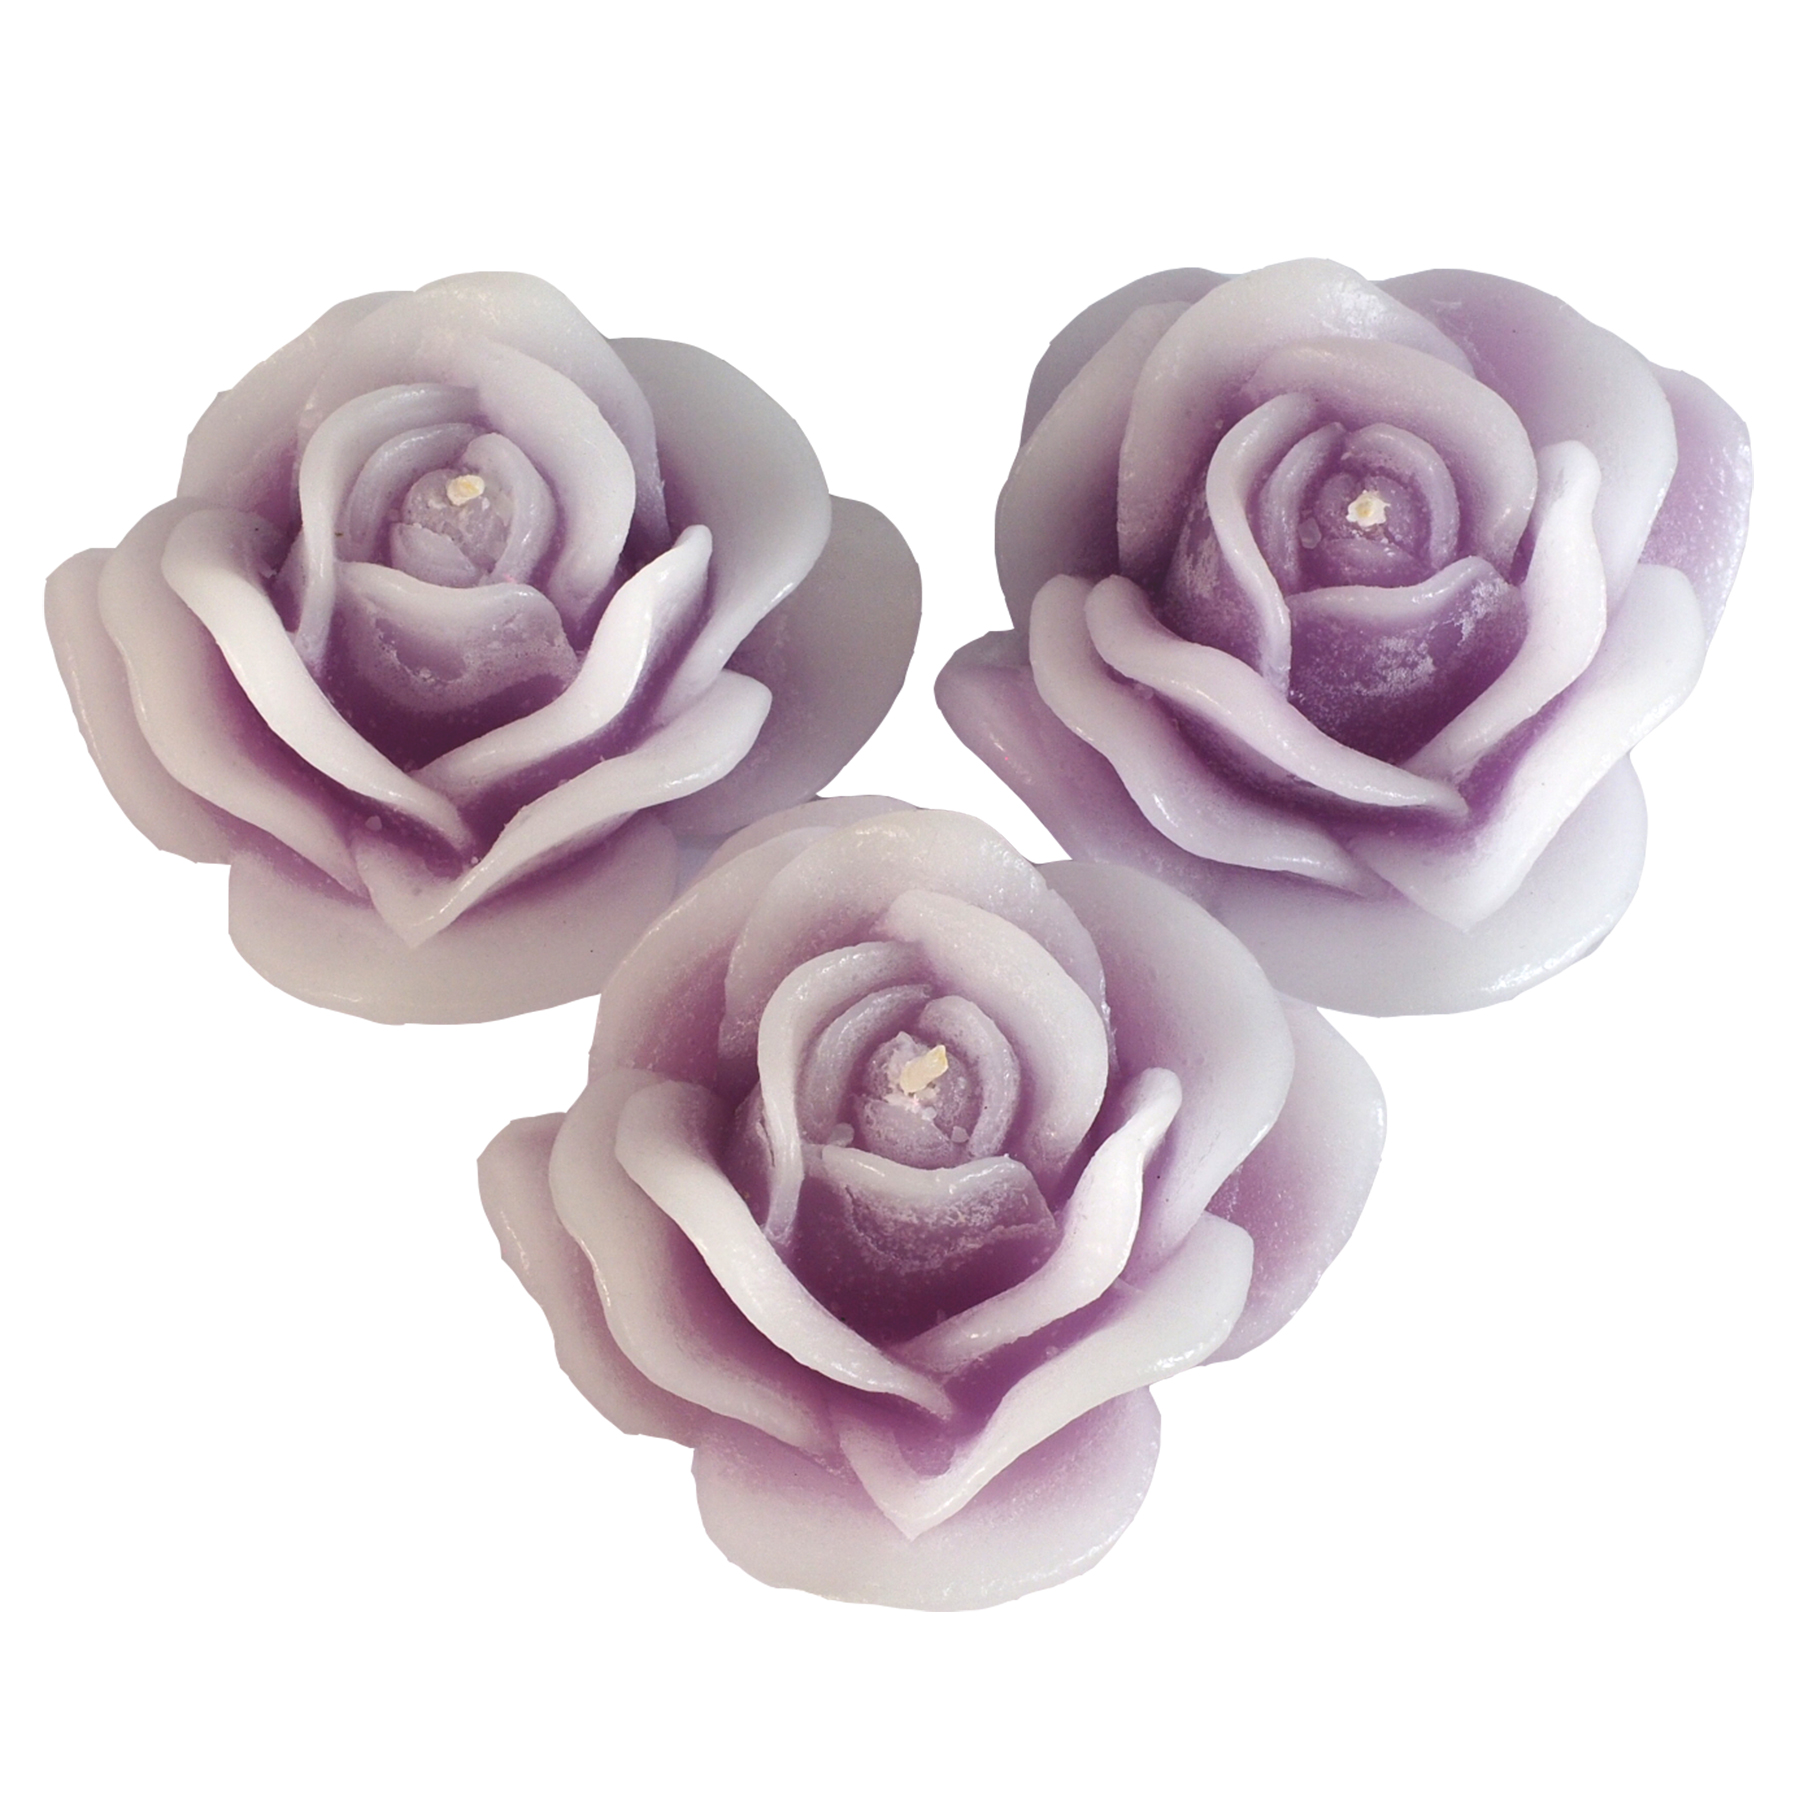 Tender Lilac 'Blooming Rose' Handmade Cast Candles, Fragrance-free, Set of 3